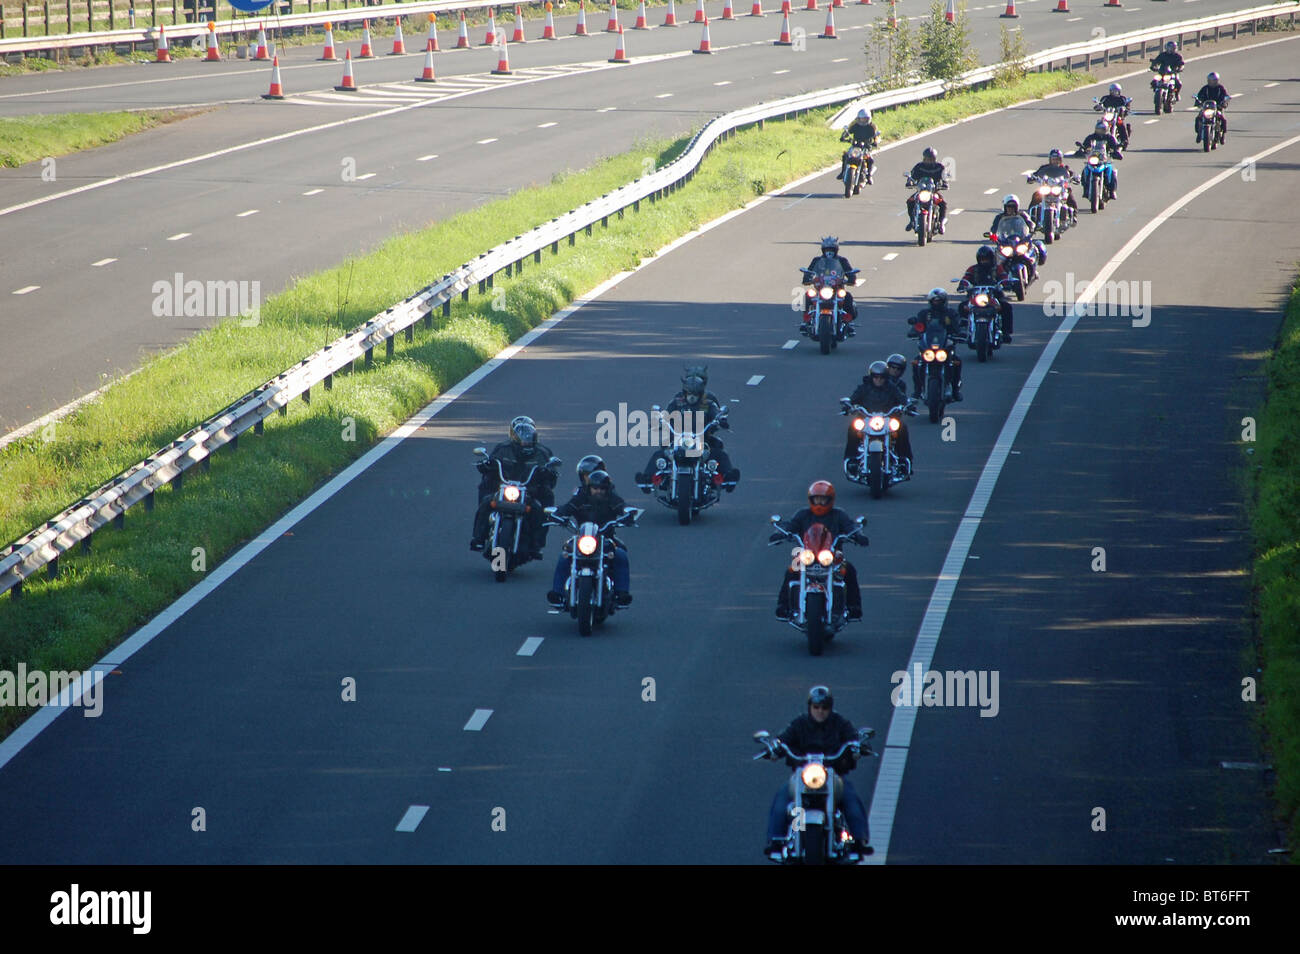 Harley Davidsons and other bikes as part of the Hoggin the Bridge 2010 event - Stock Image